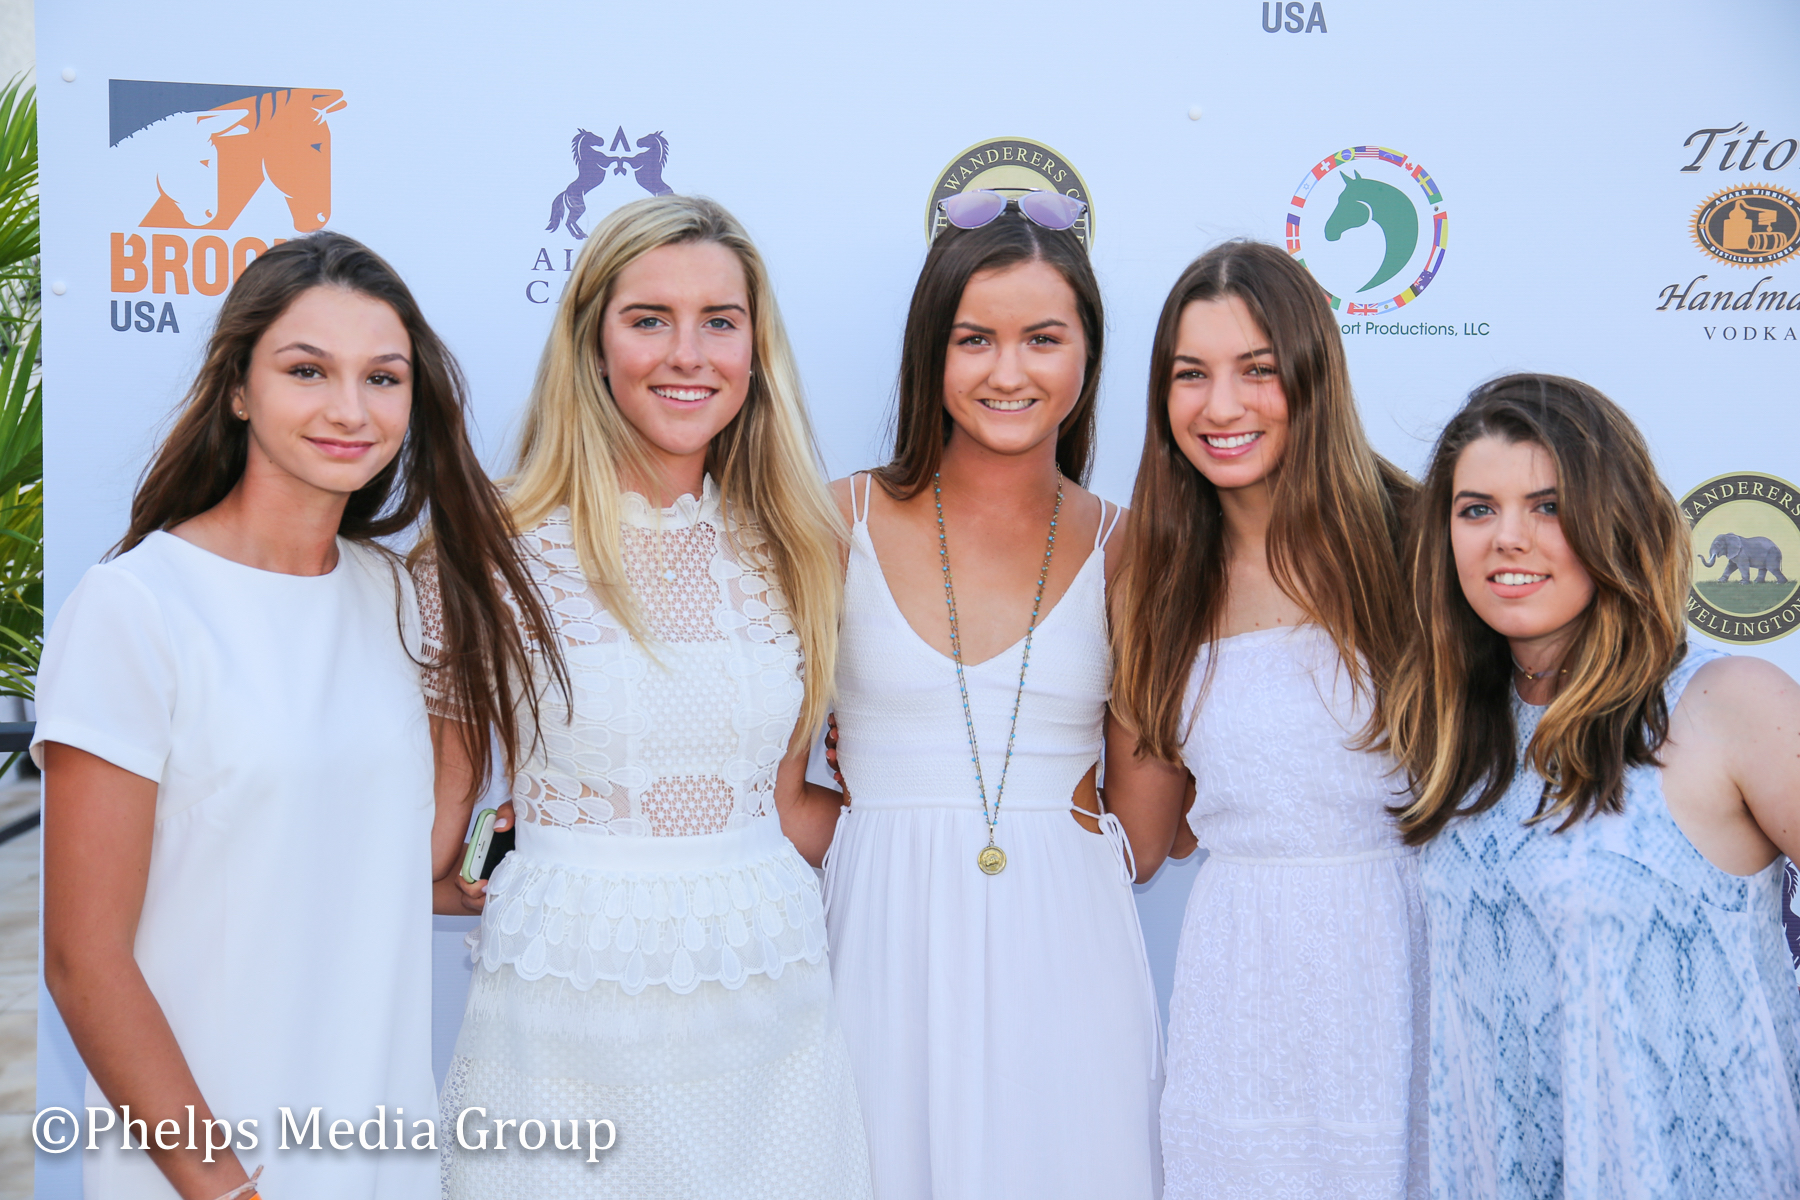 Helen Graves, Isabel Stettinius, Marissa Rice, Sarah Yandell; Nic Roldan's 2nd Annual Sunset Polo & White Party, FL, by Phelps Media.jpg